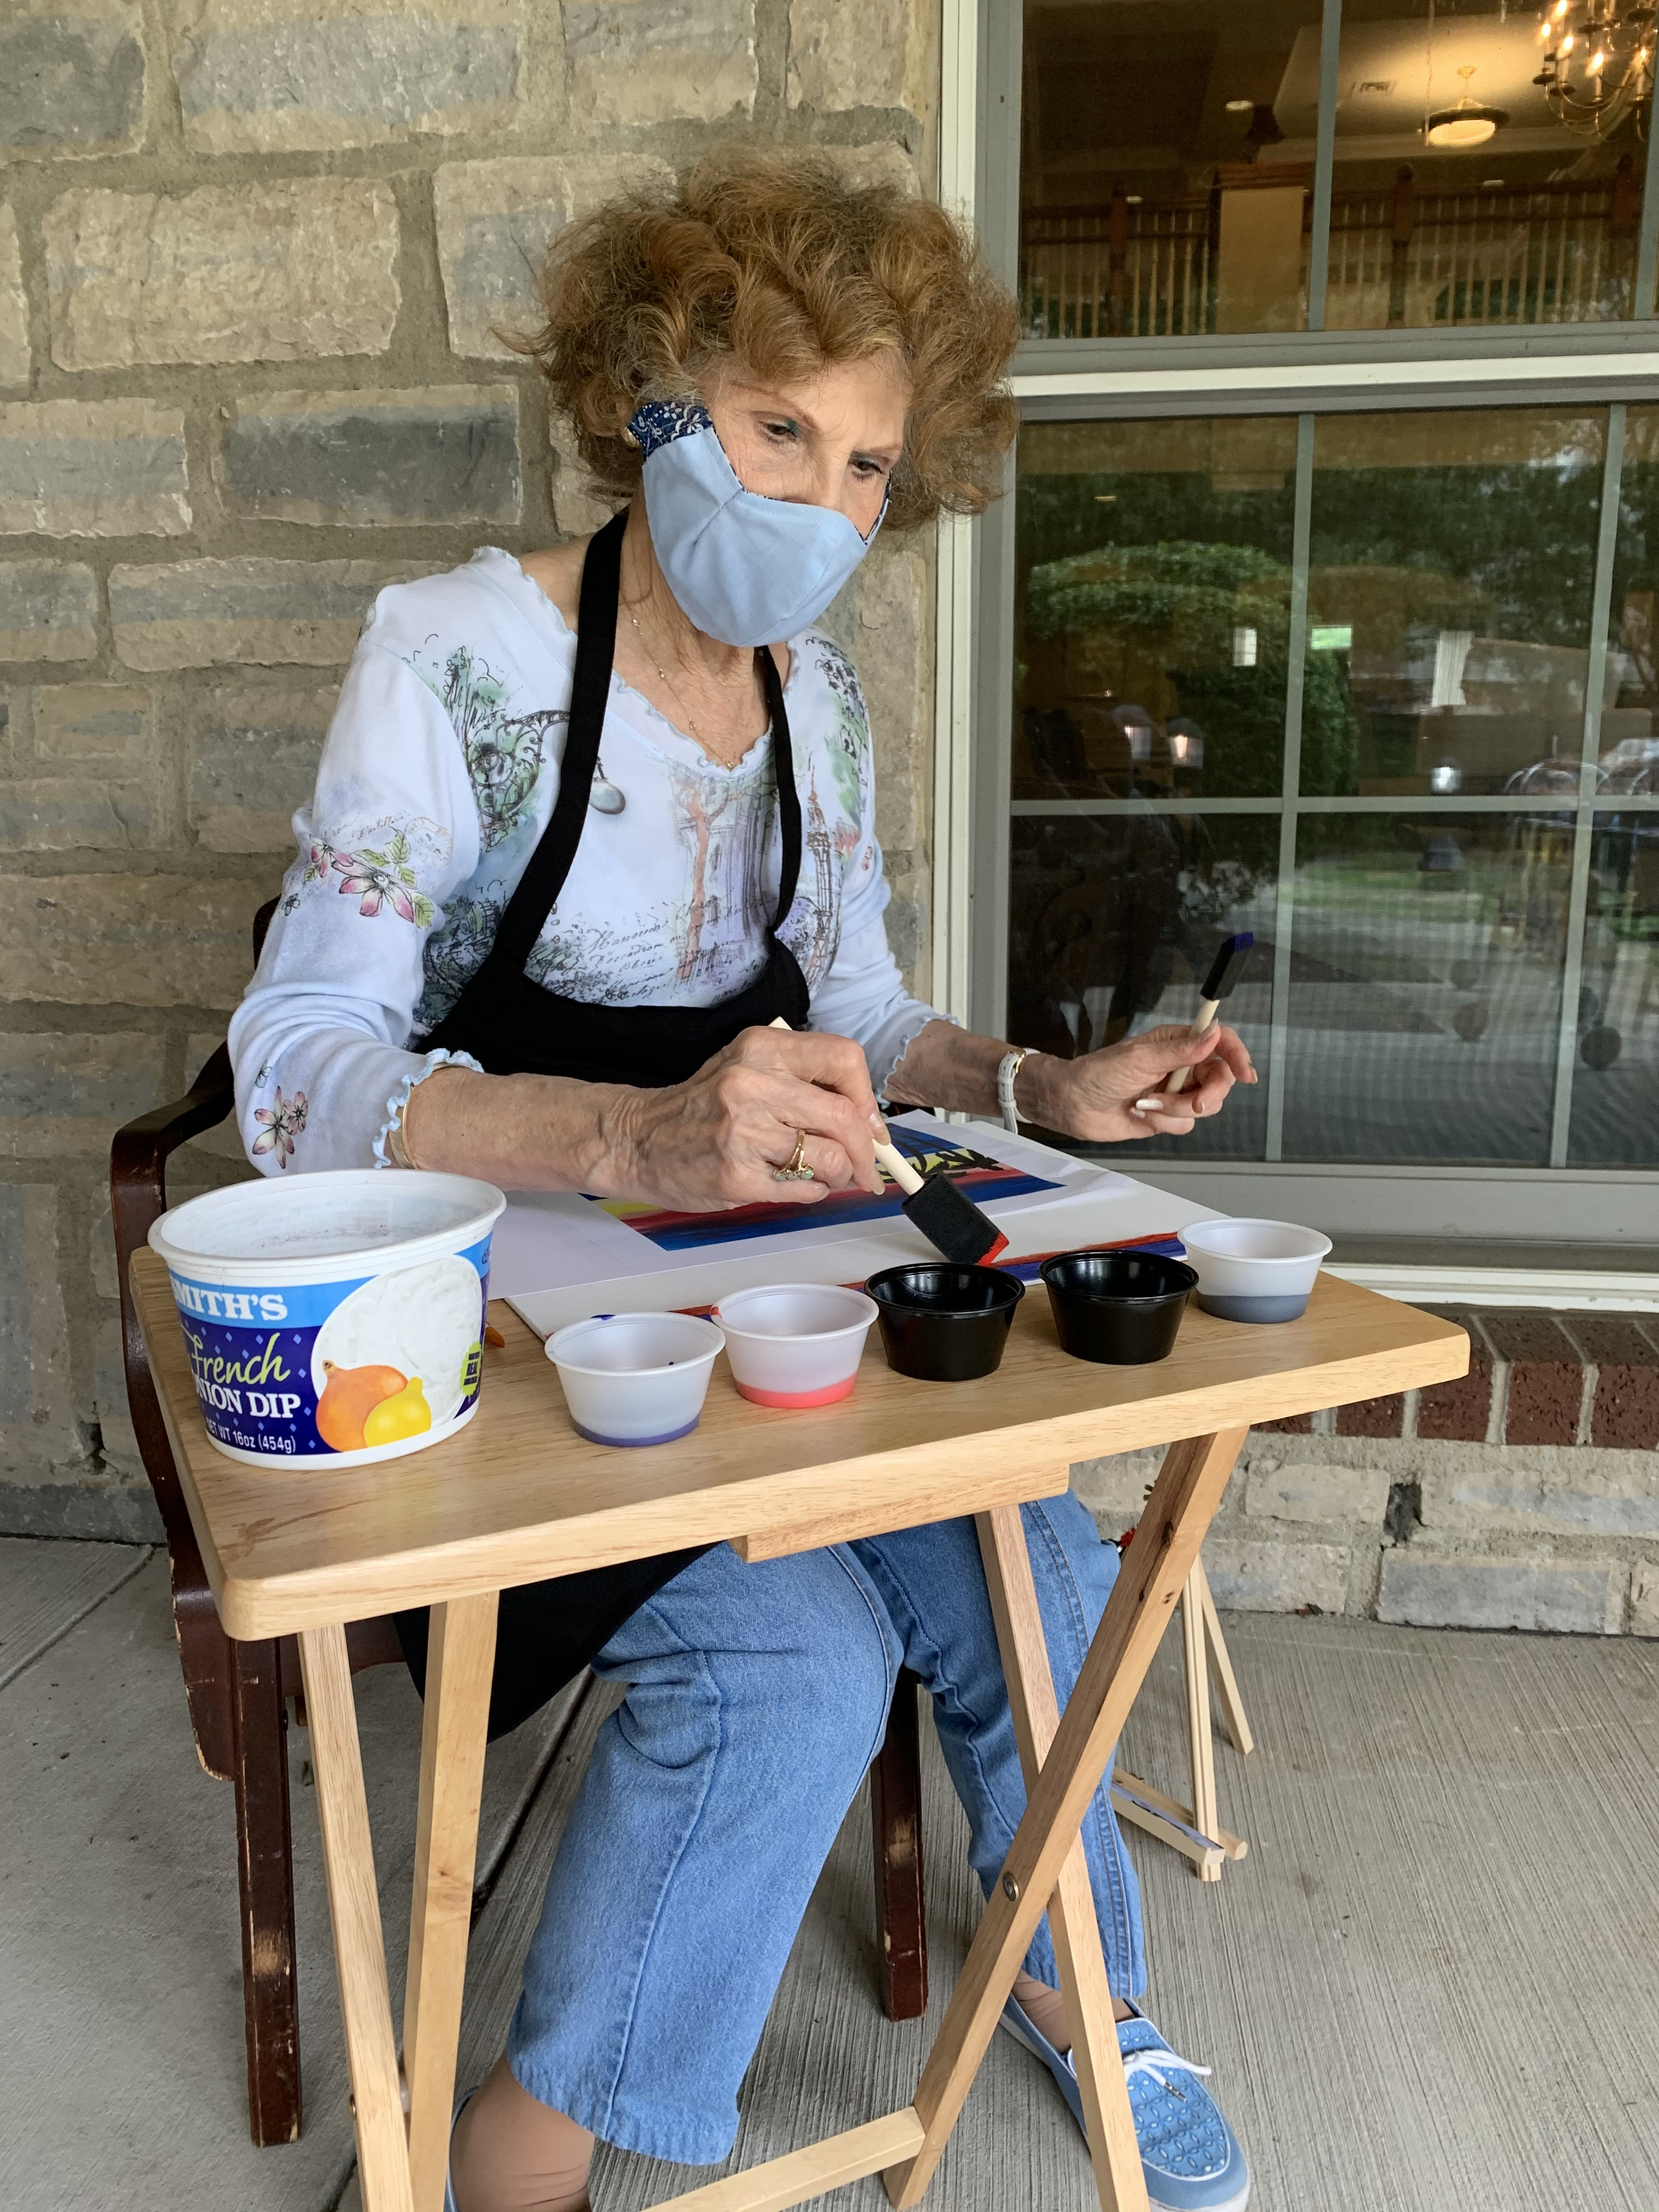 Creekside resident of Wexner Heritage Village painting.